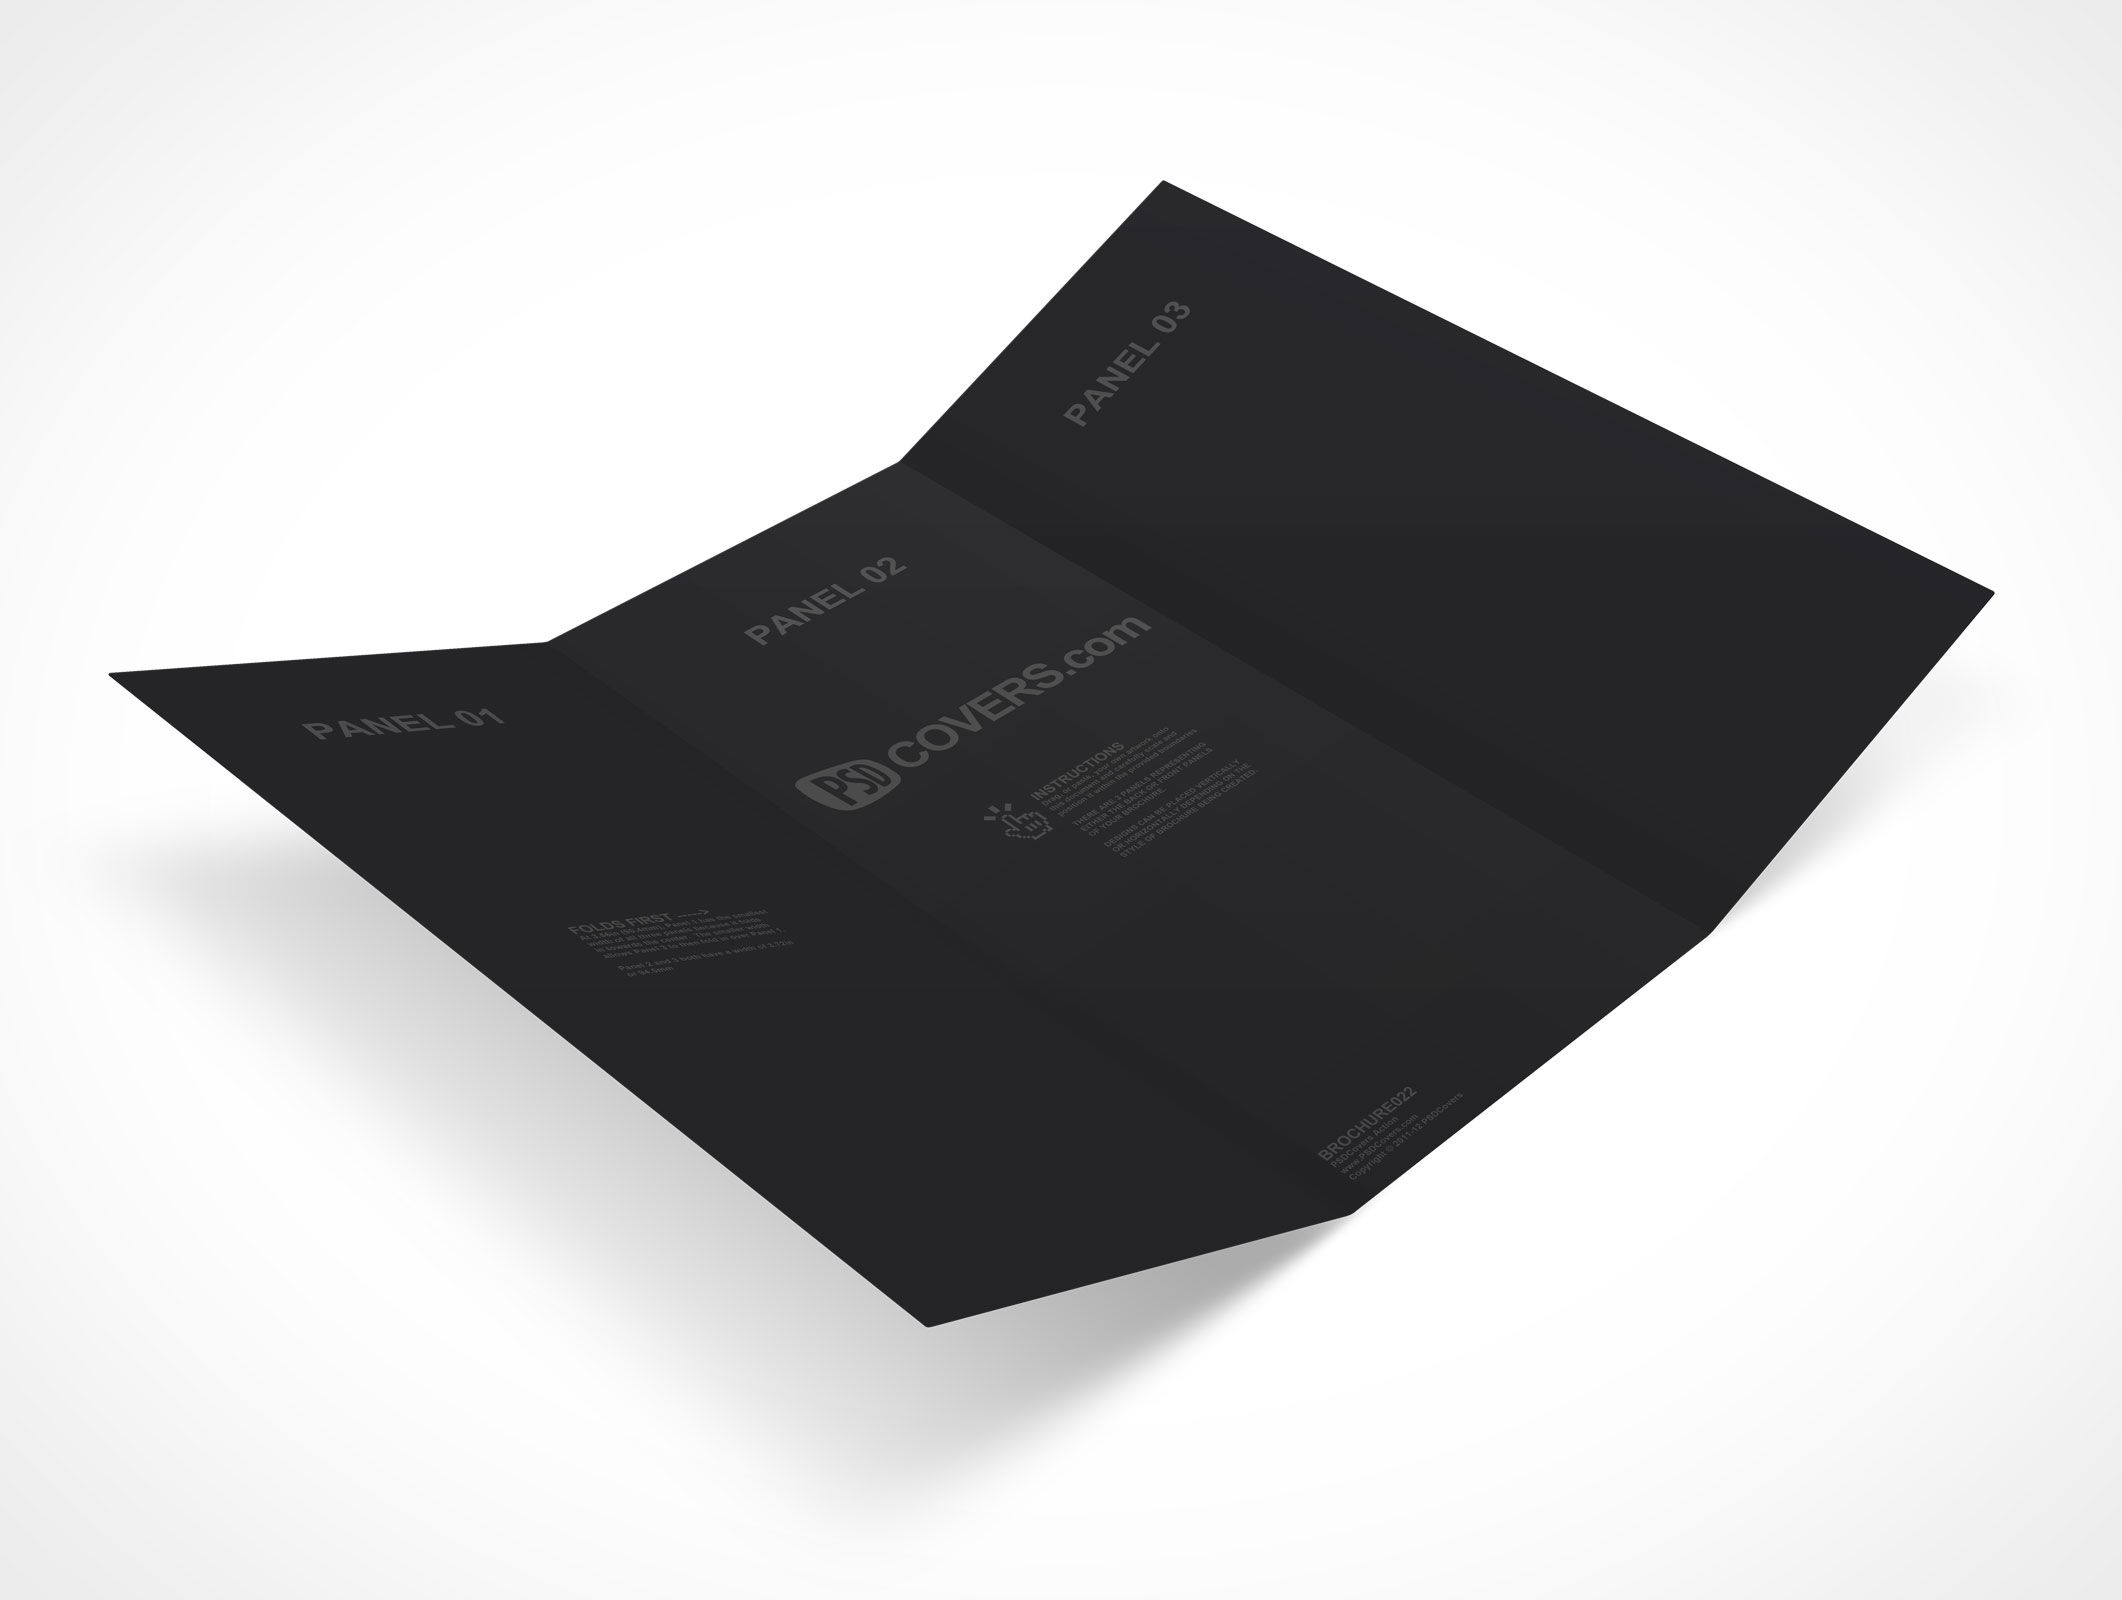 brochure022 is a free mockup template for a letter sized 3 panel